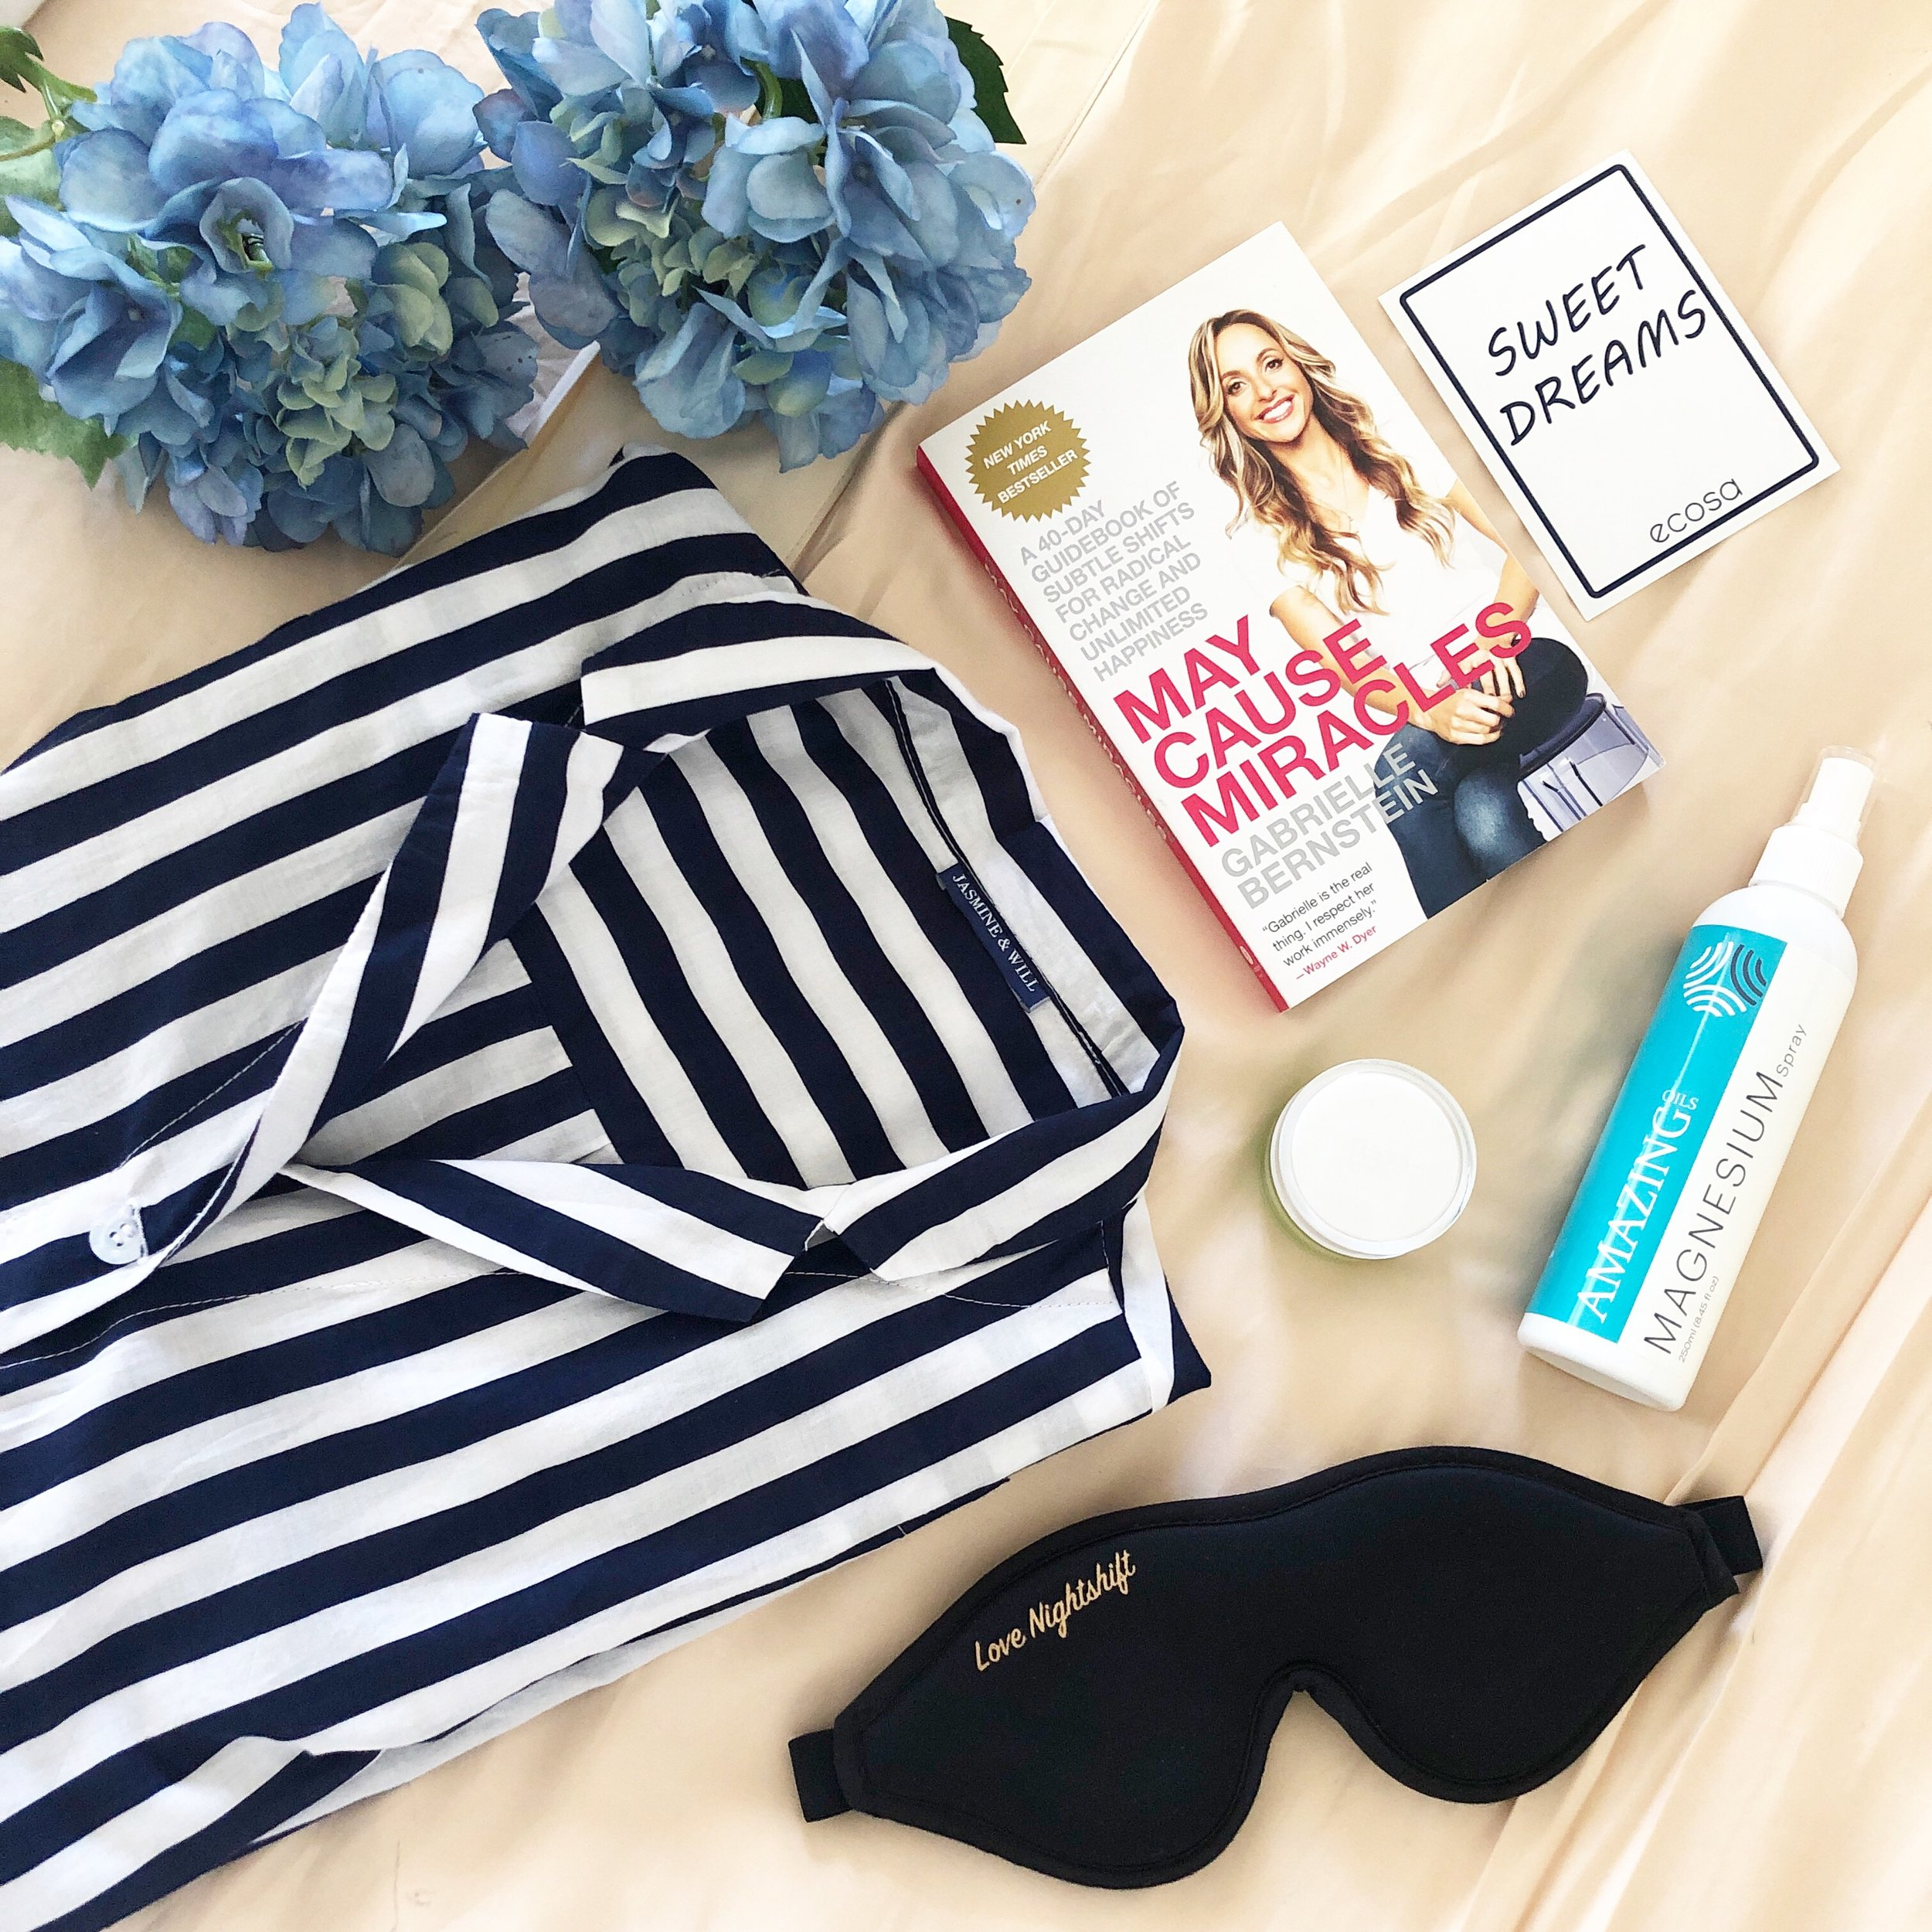 My sleep essentials flat lay featuring  Jasmine and Will , my current read by Gabrielle Bernstein - May Cause Miracles,  Noelle Australia Kakudu Plum Firm Eye Cream  and our Amazing Oils Magnesium Spray.